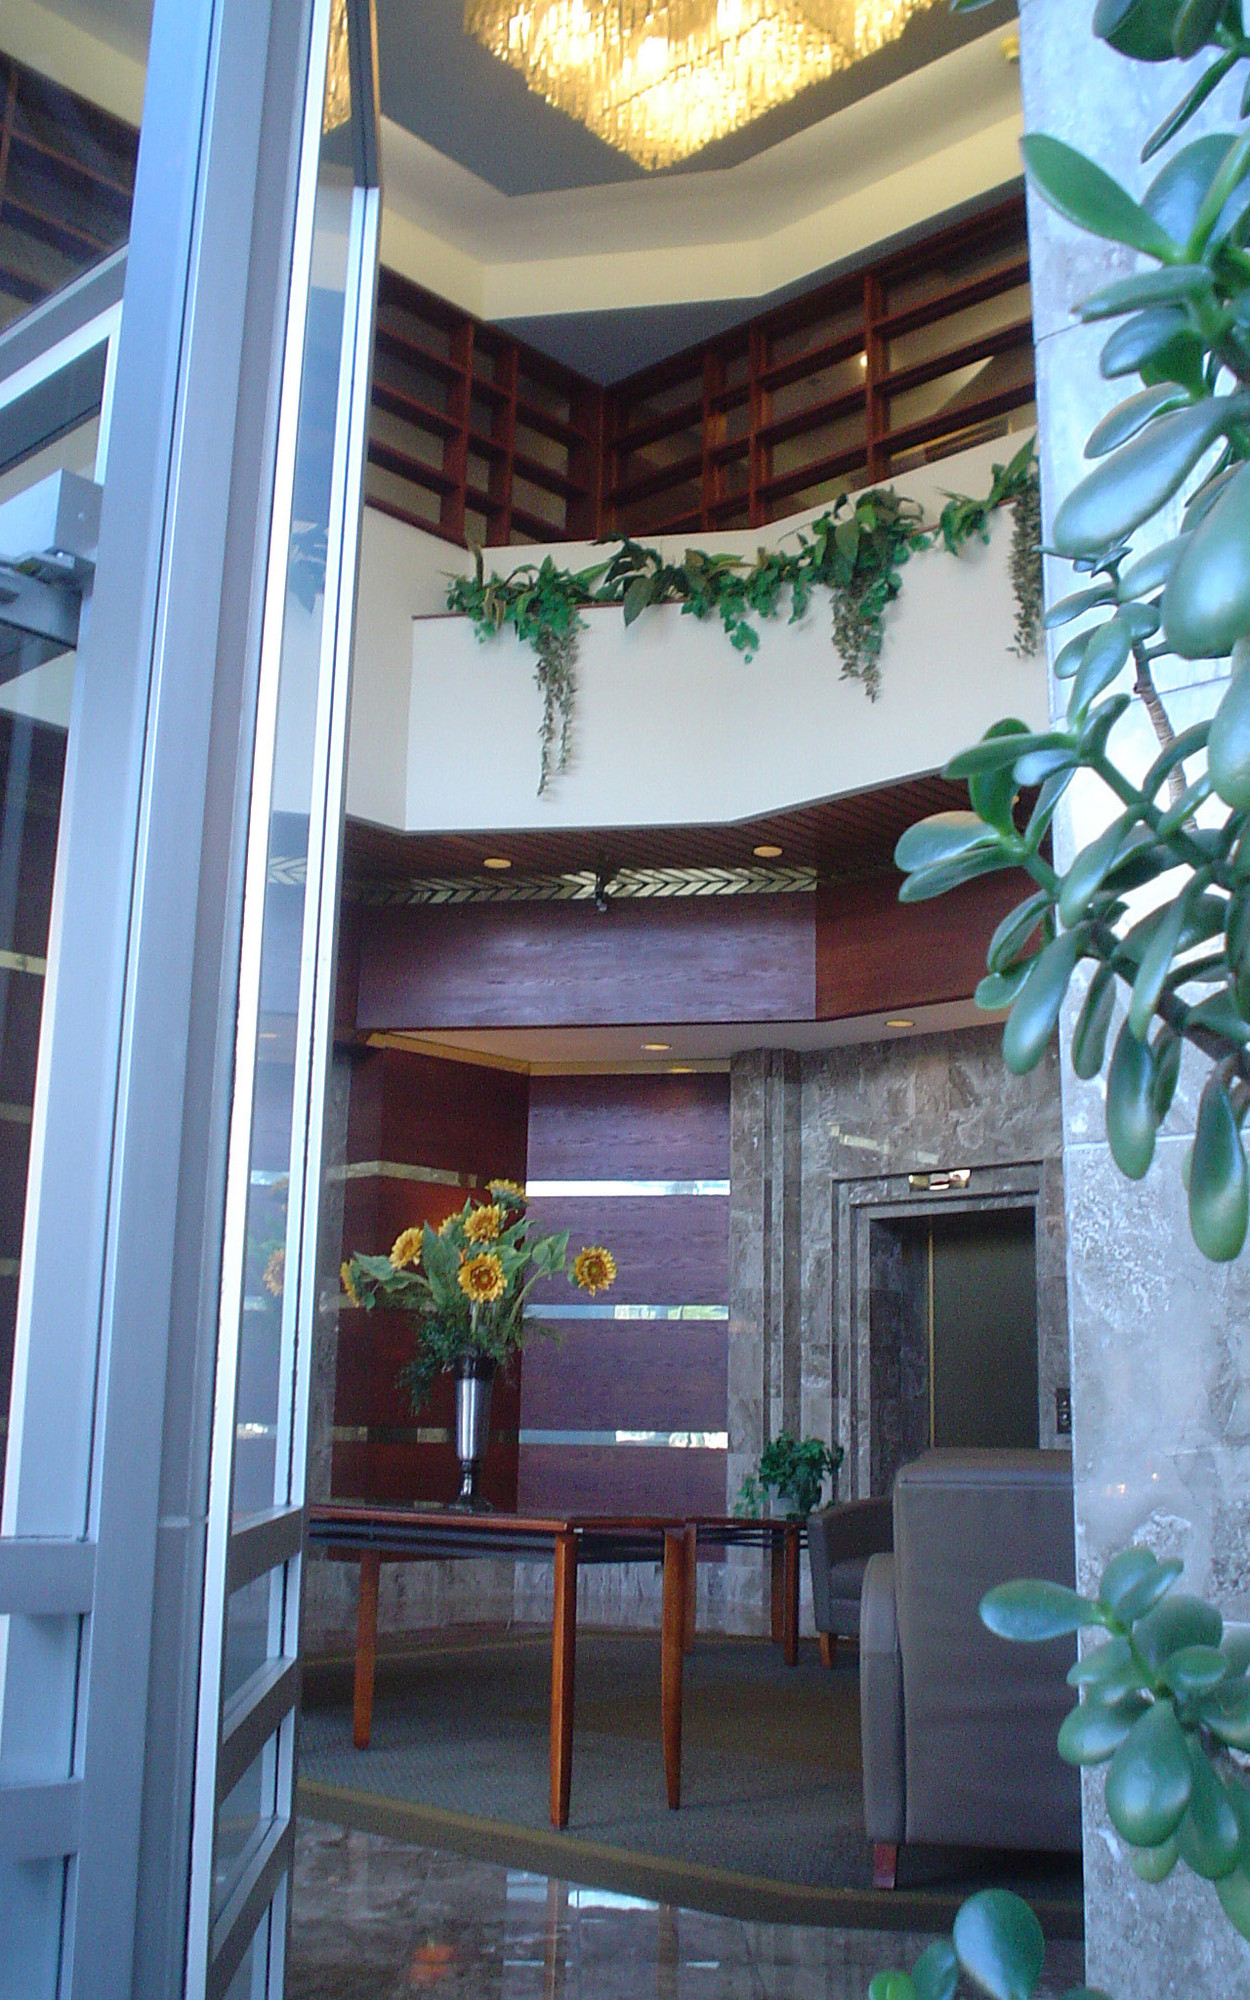 View Entering the St.George's Residential Lobby